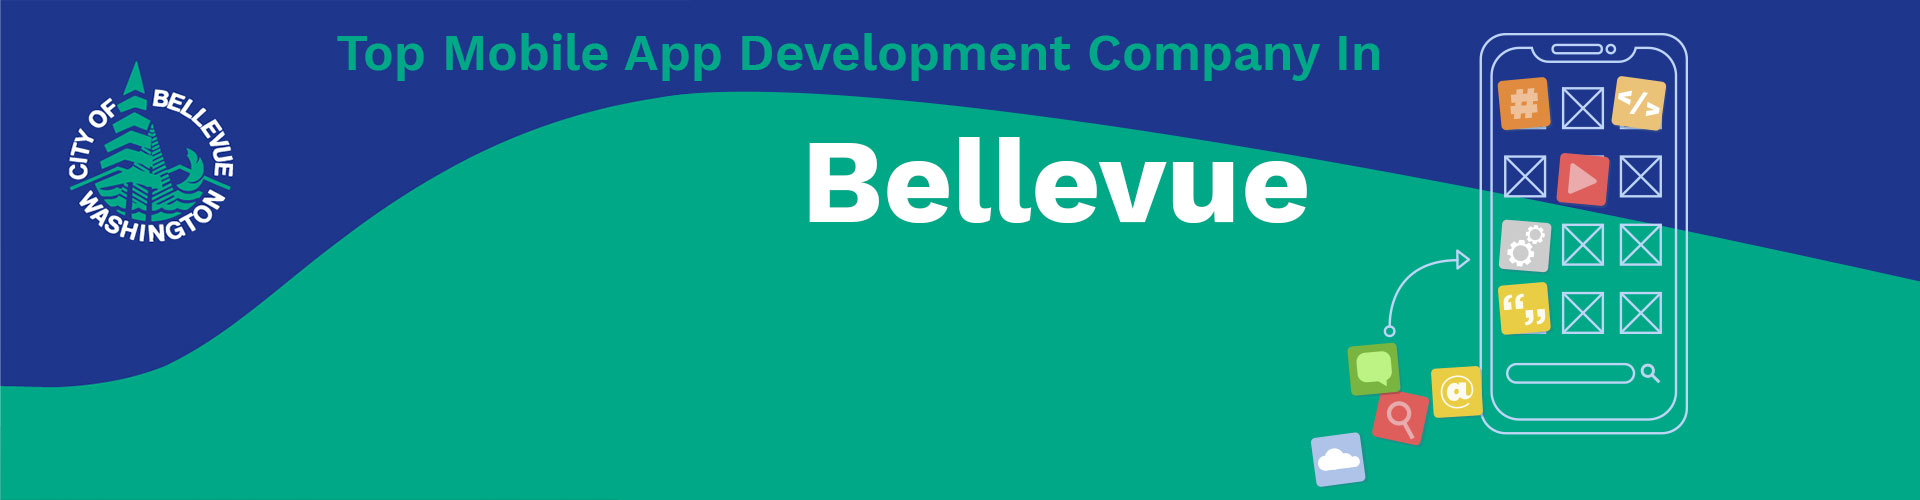 mobile app development company bellevue